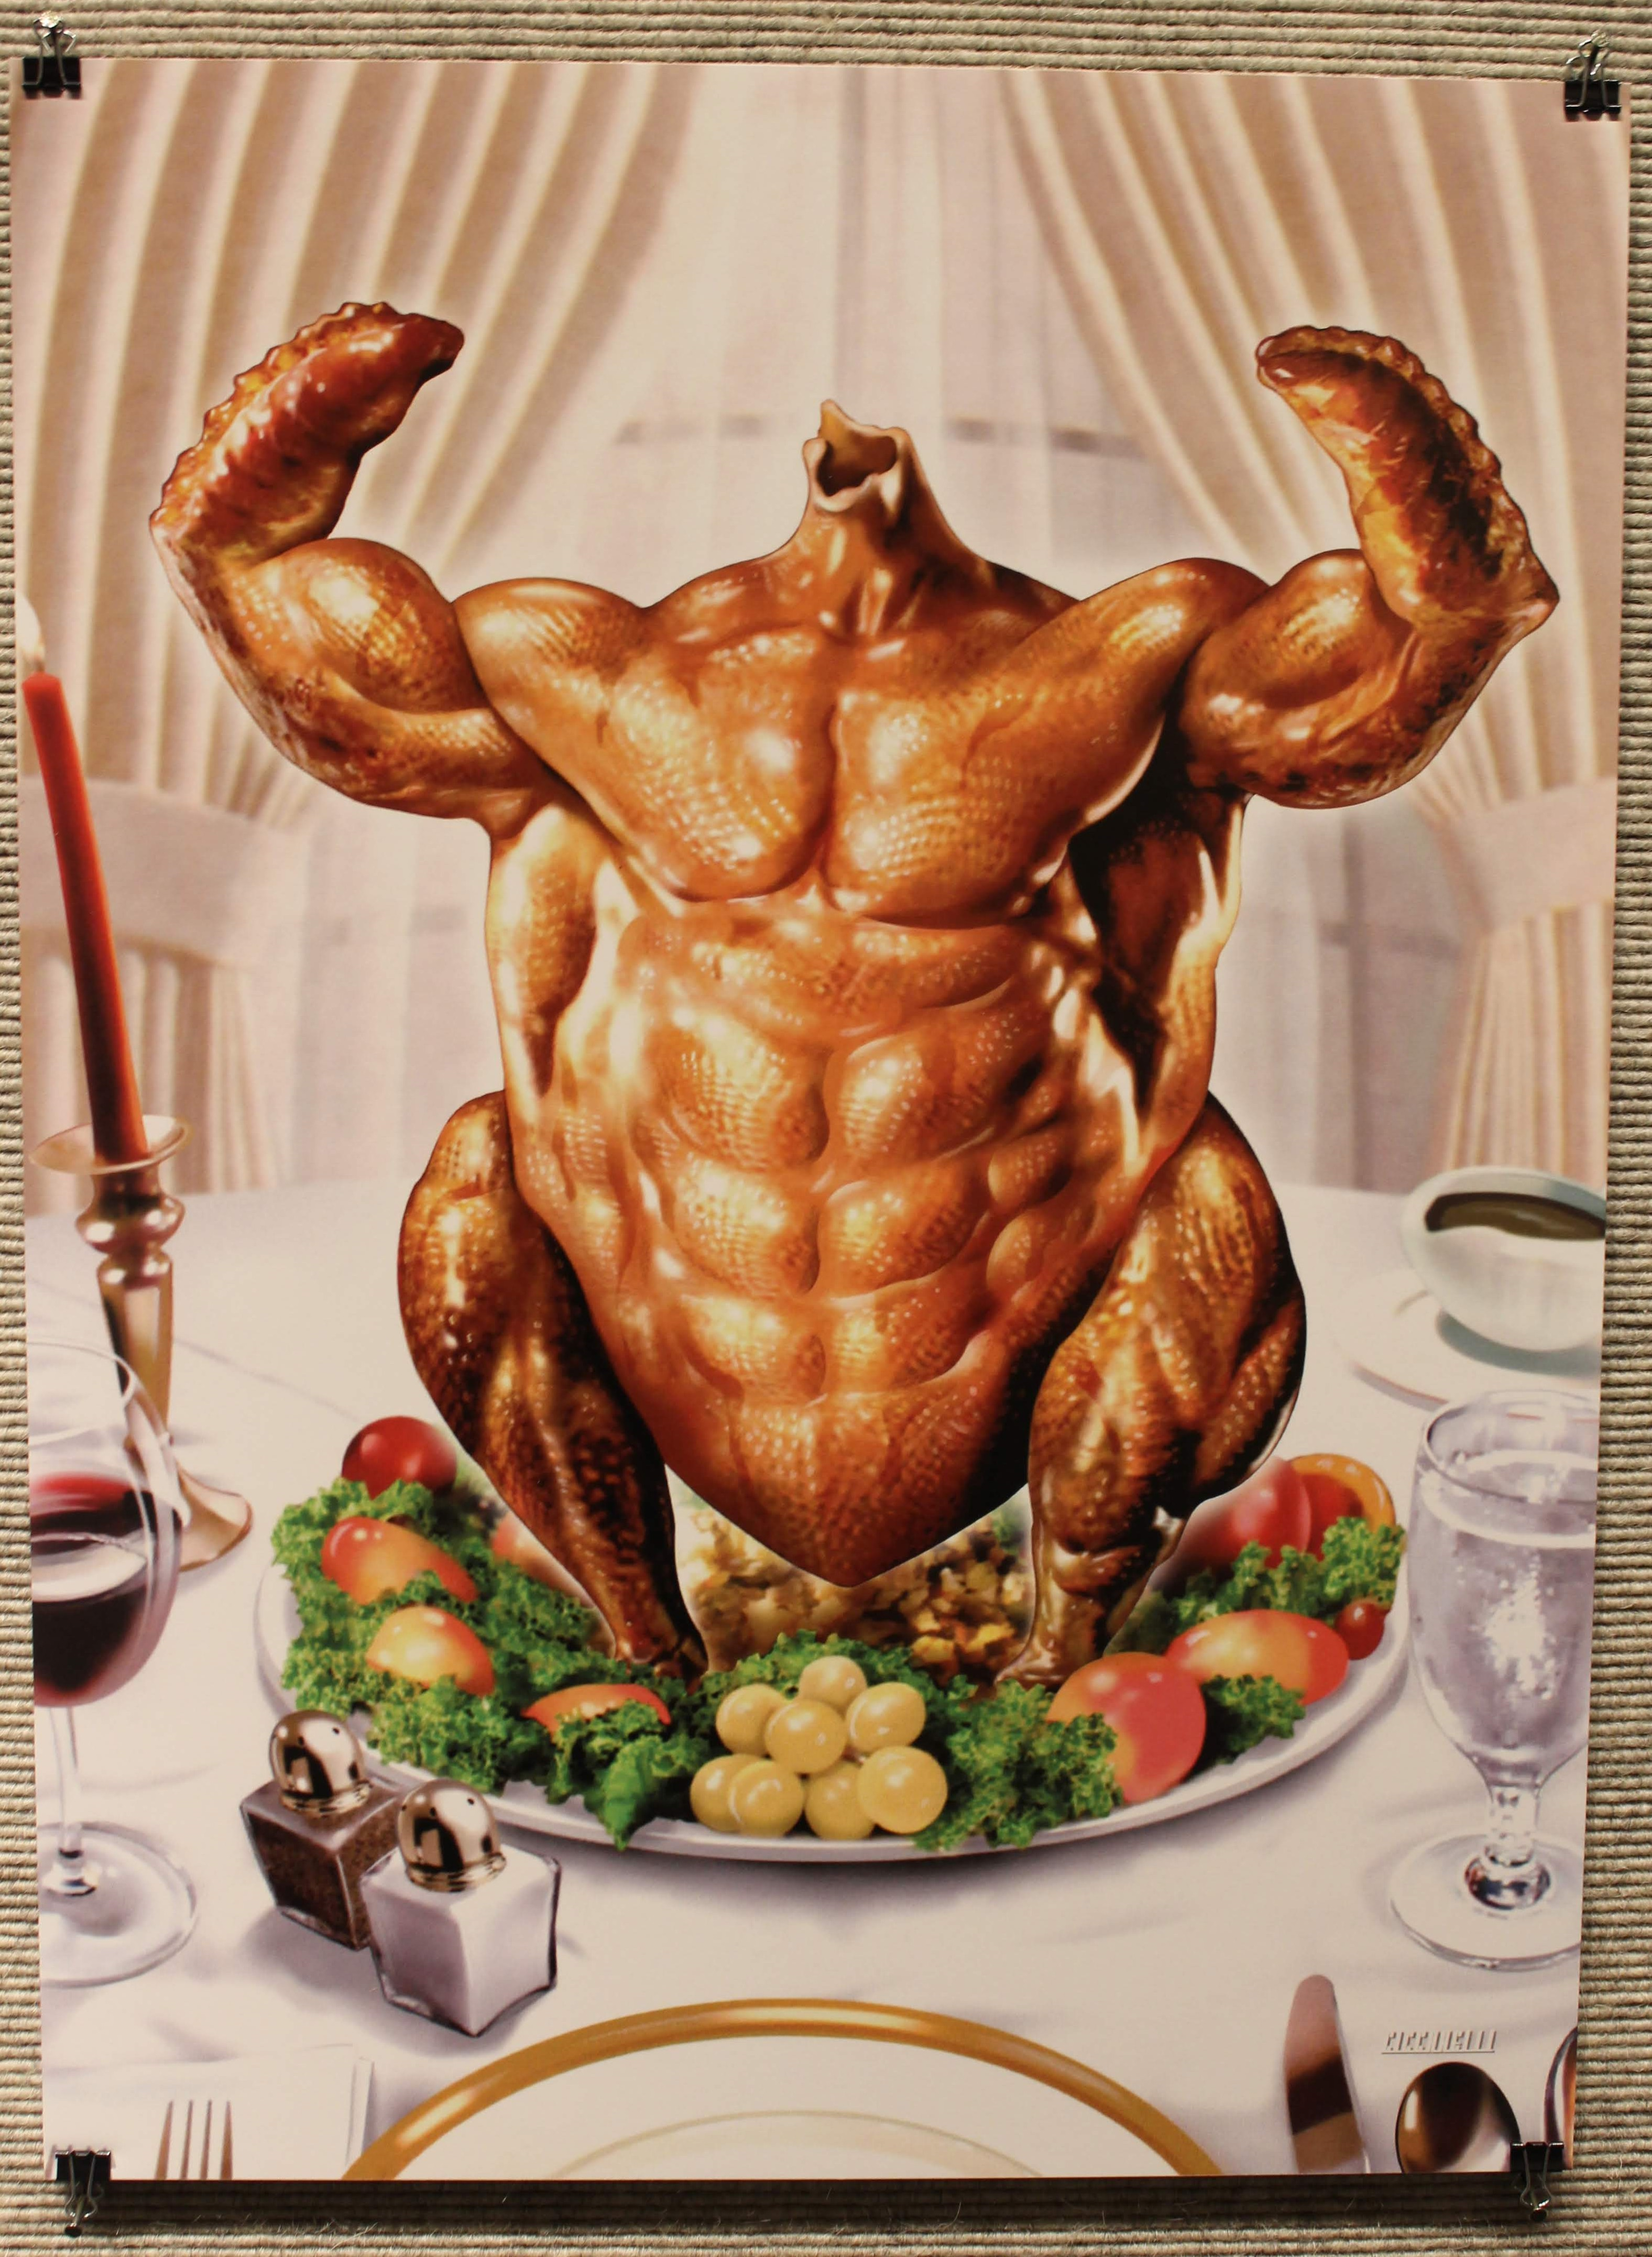 Image of a flexing, muscular turkey